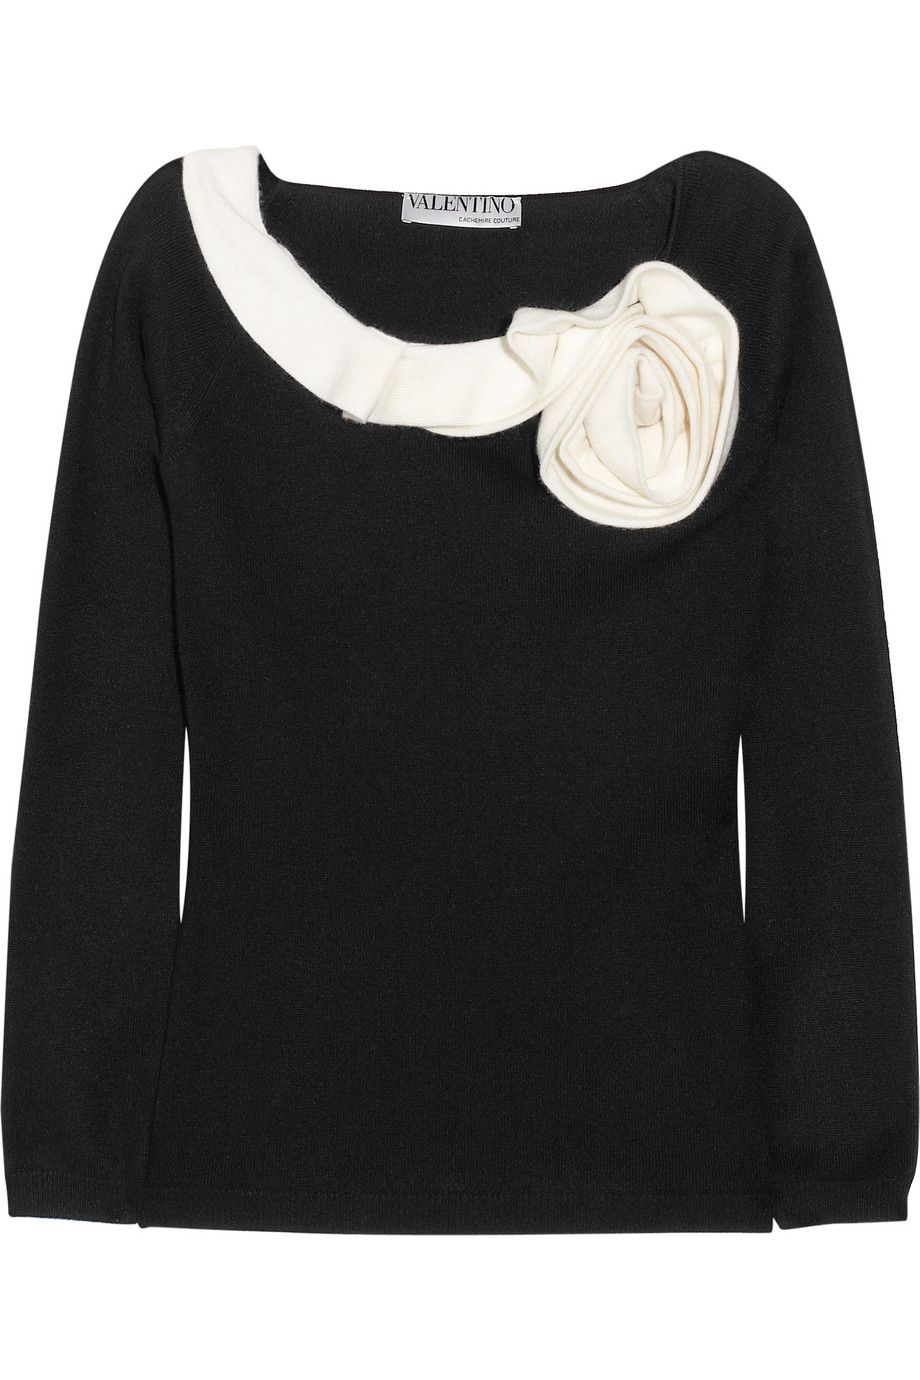 Valentino | Rosette-trimmed cashmere sweater | Love it!